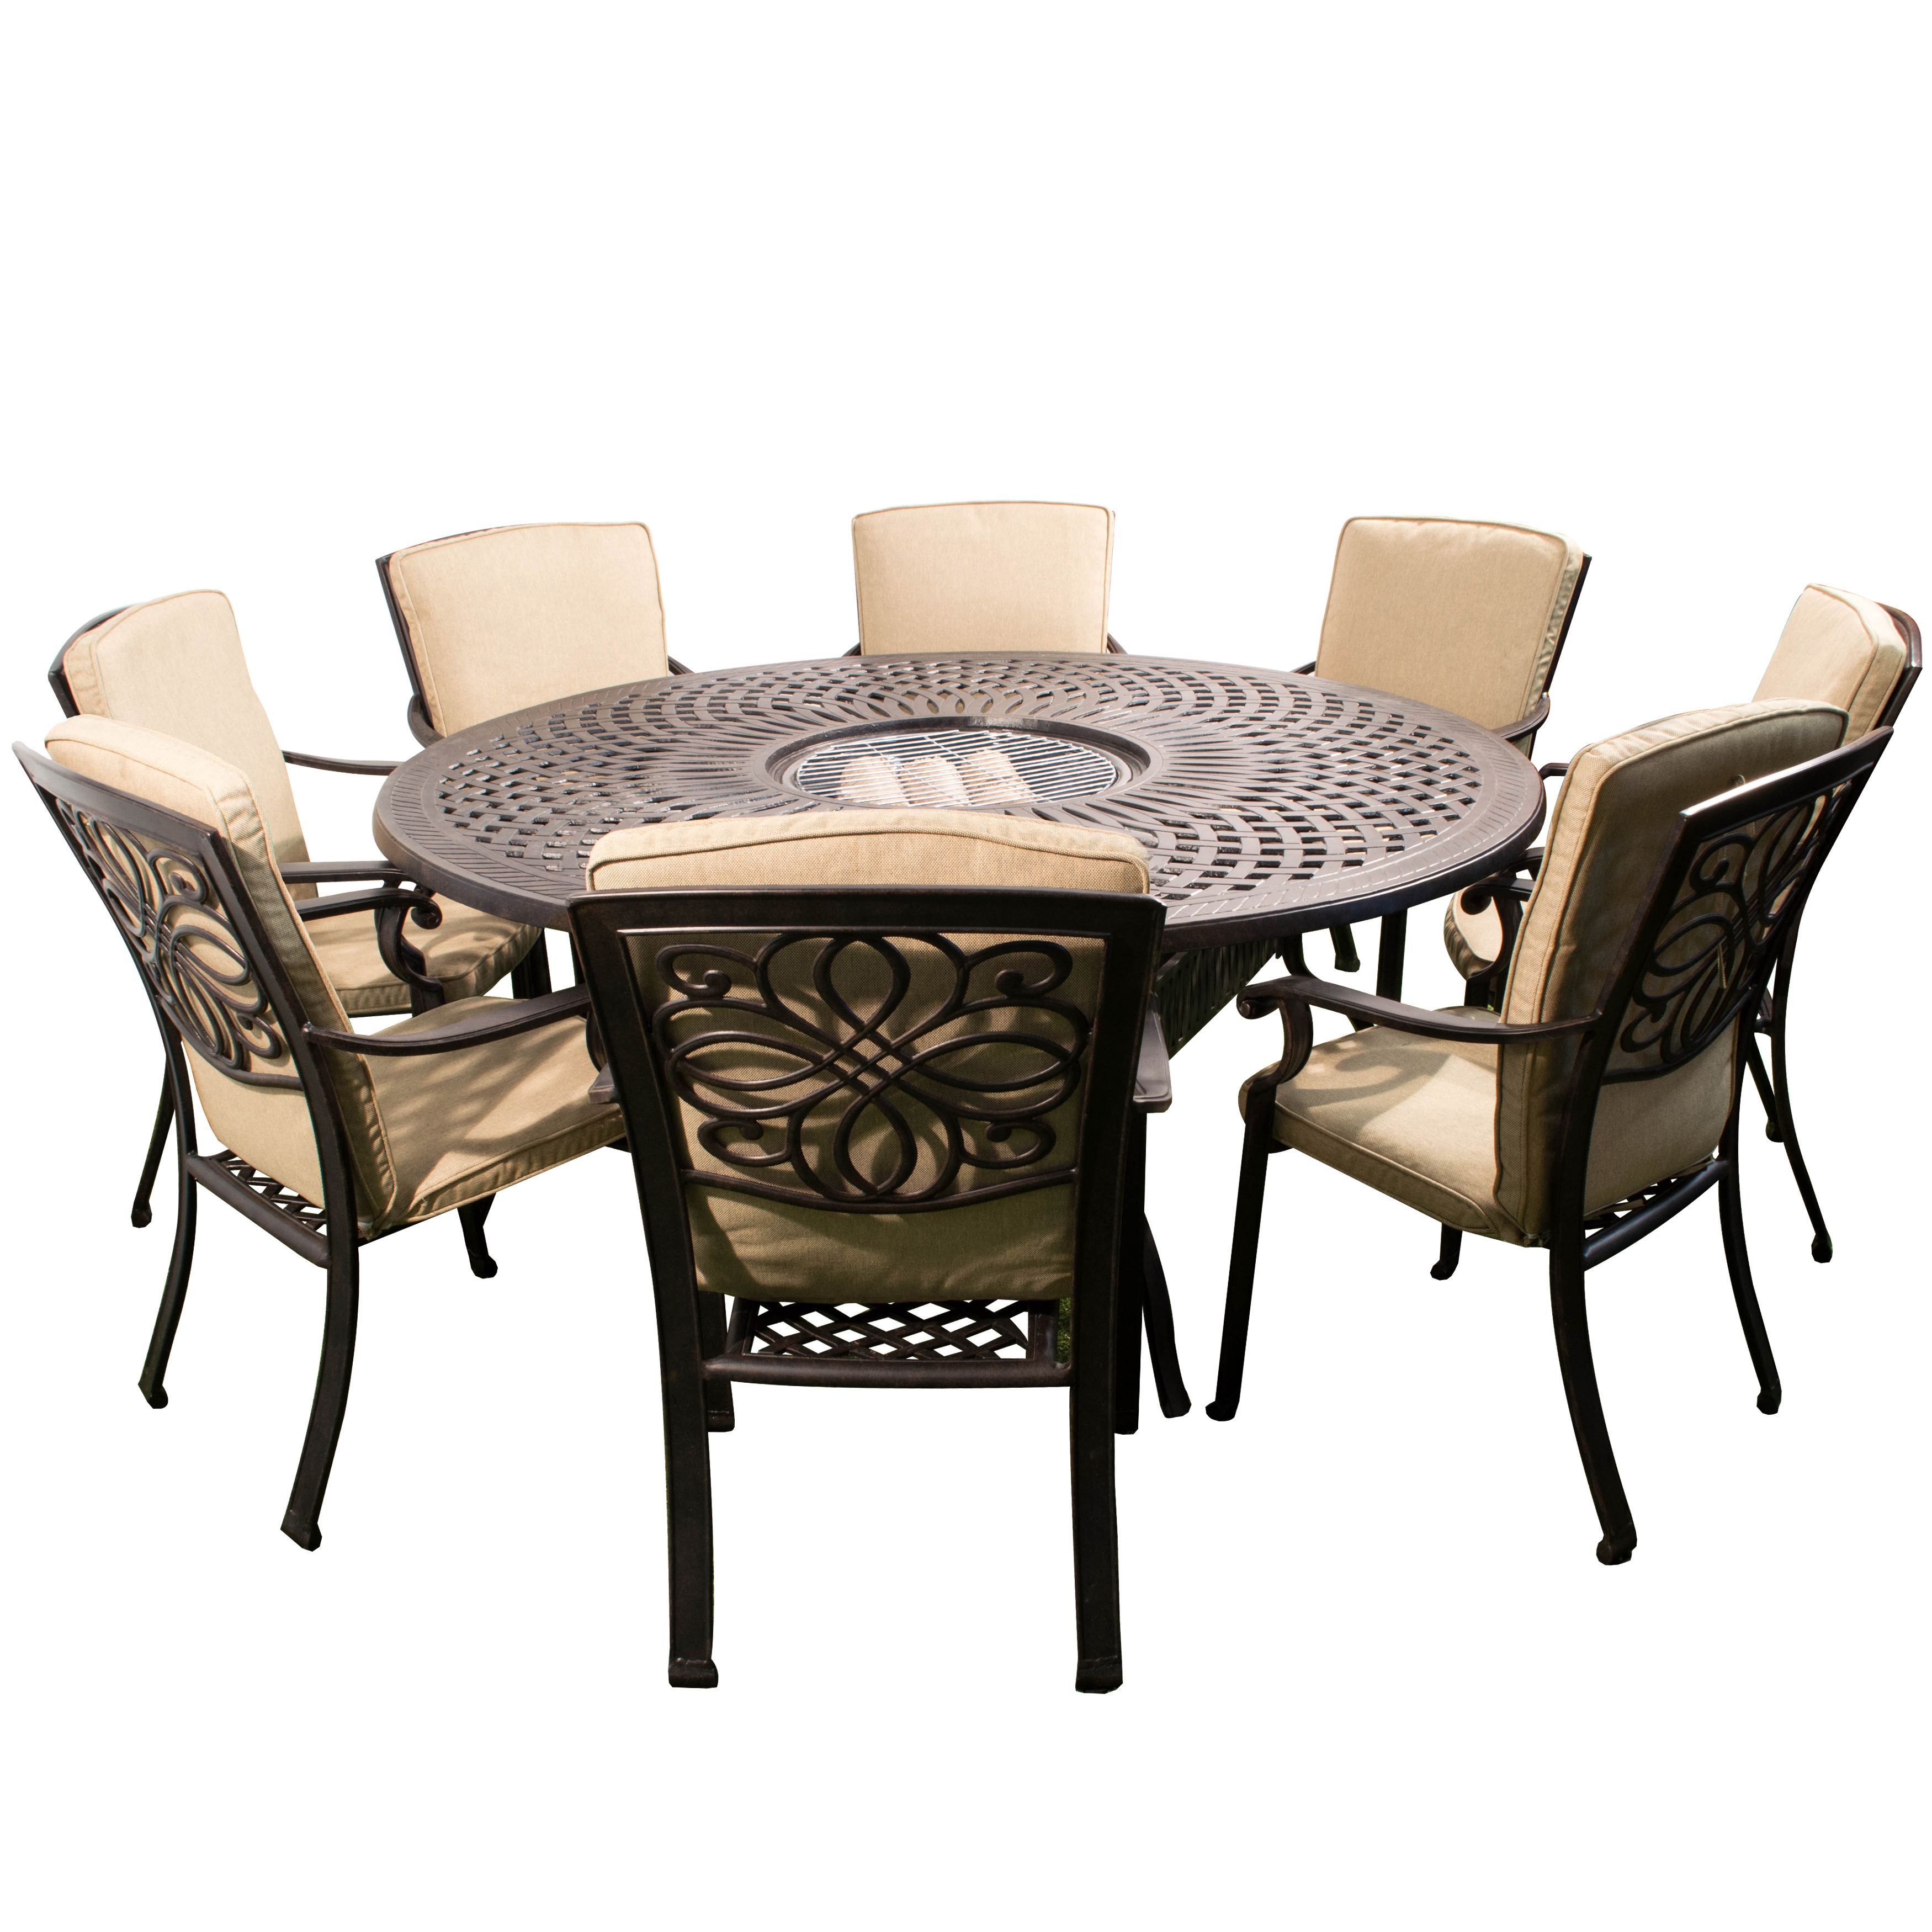 Gregg Wallace Cast Metal 8 Seat Garden Set Round Outdoor Dining